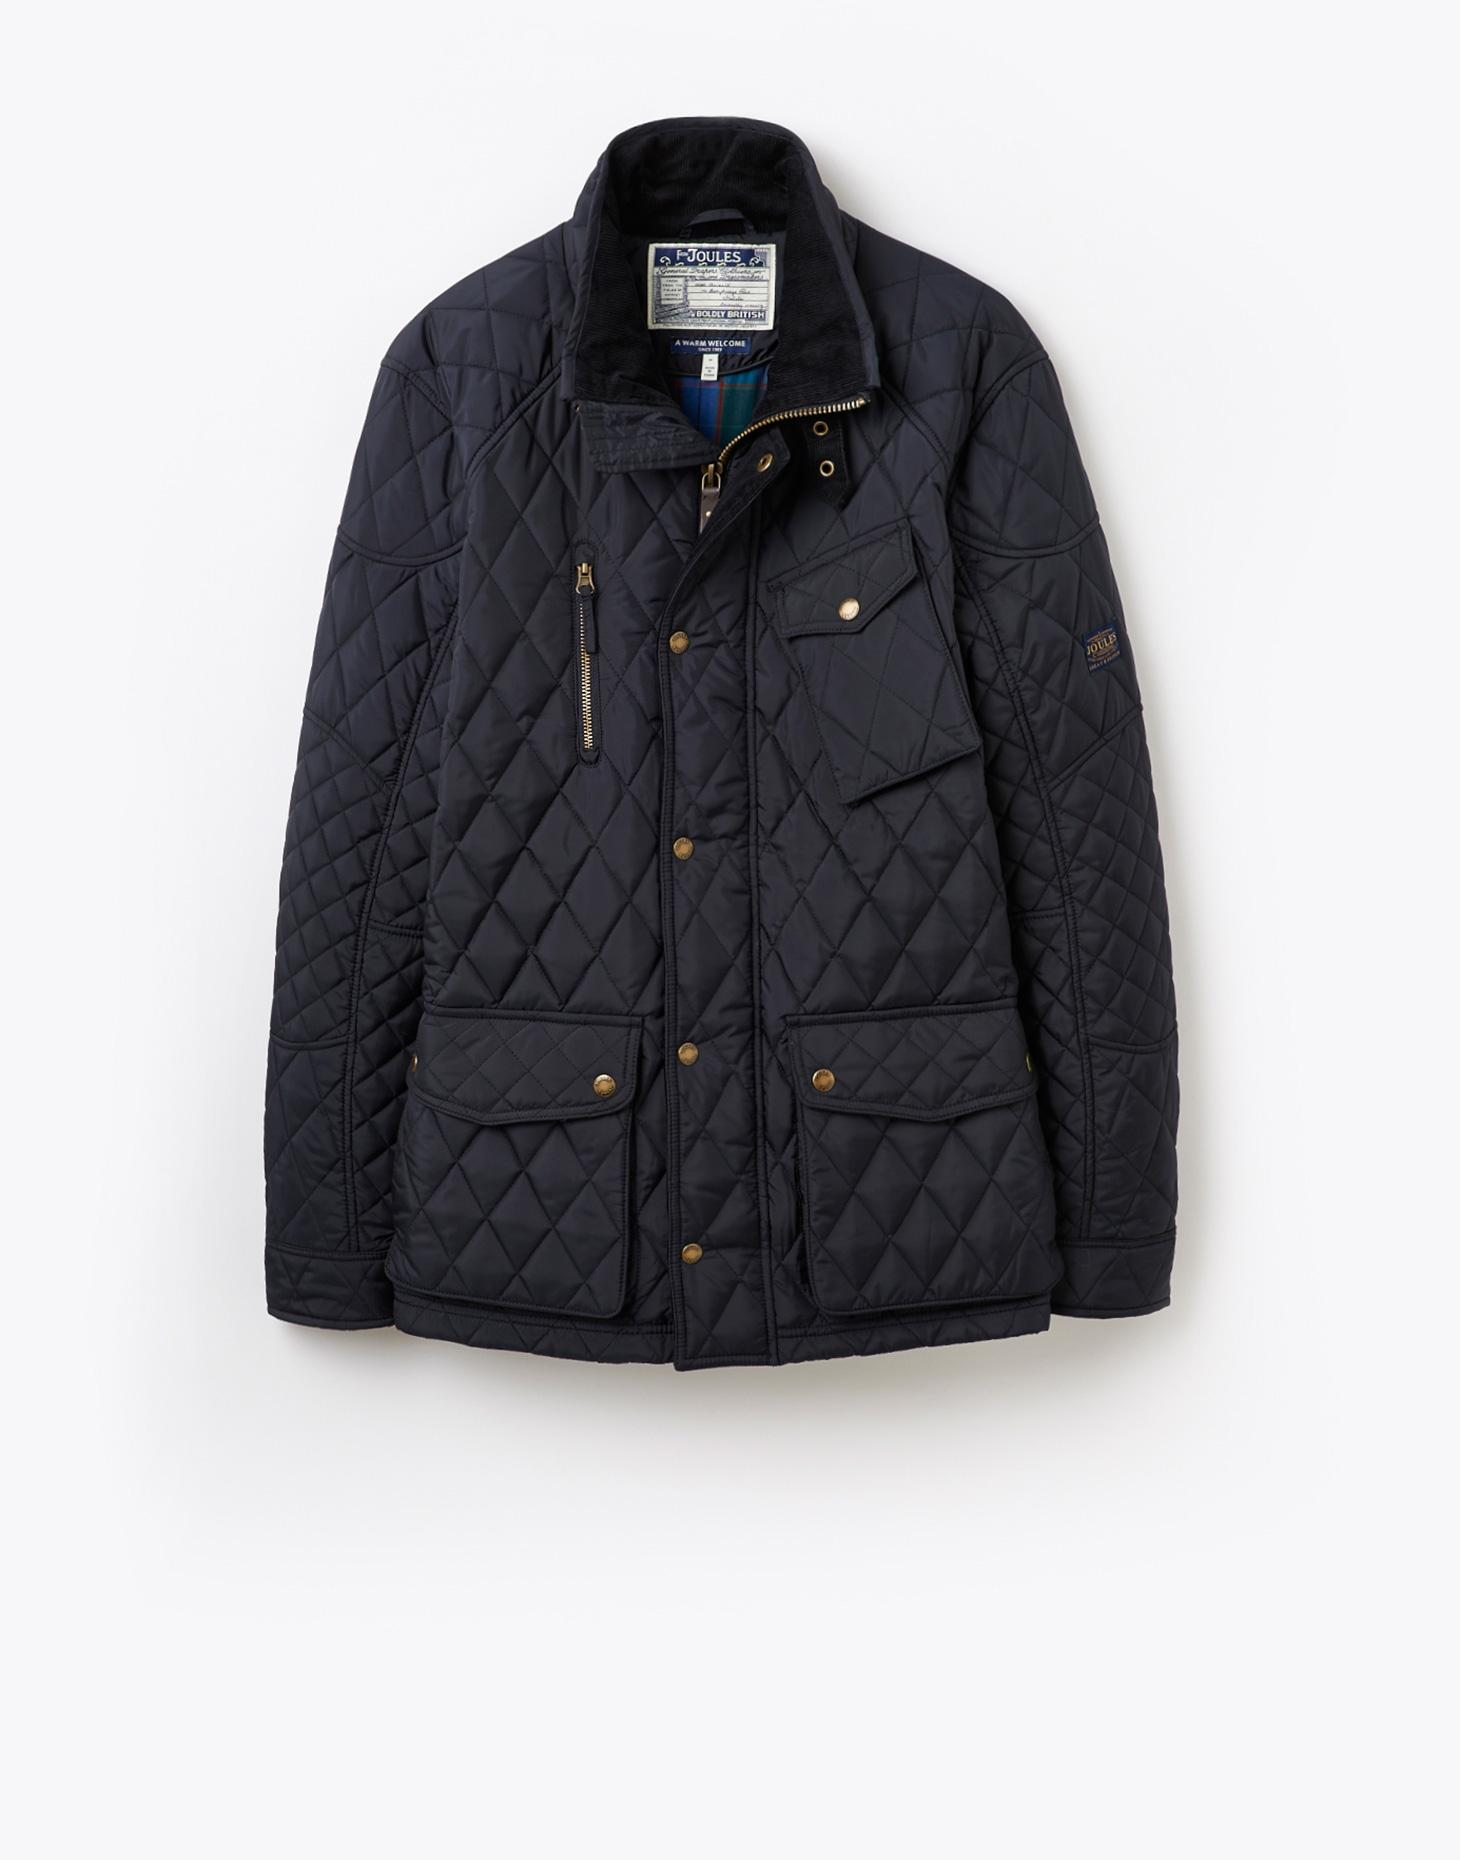 Joules Marine Navy STAFFORD Quilted Jacket